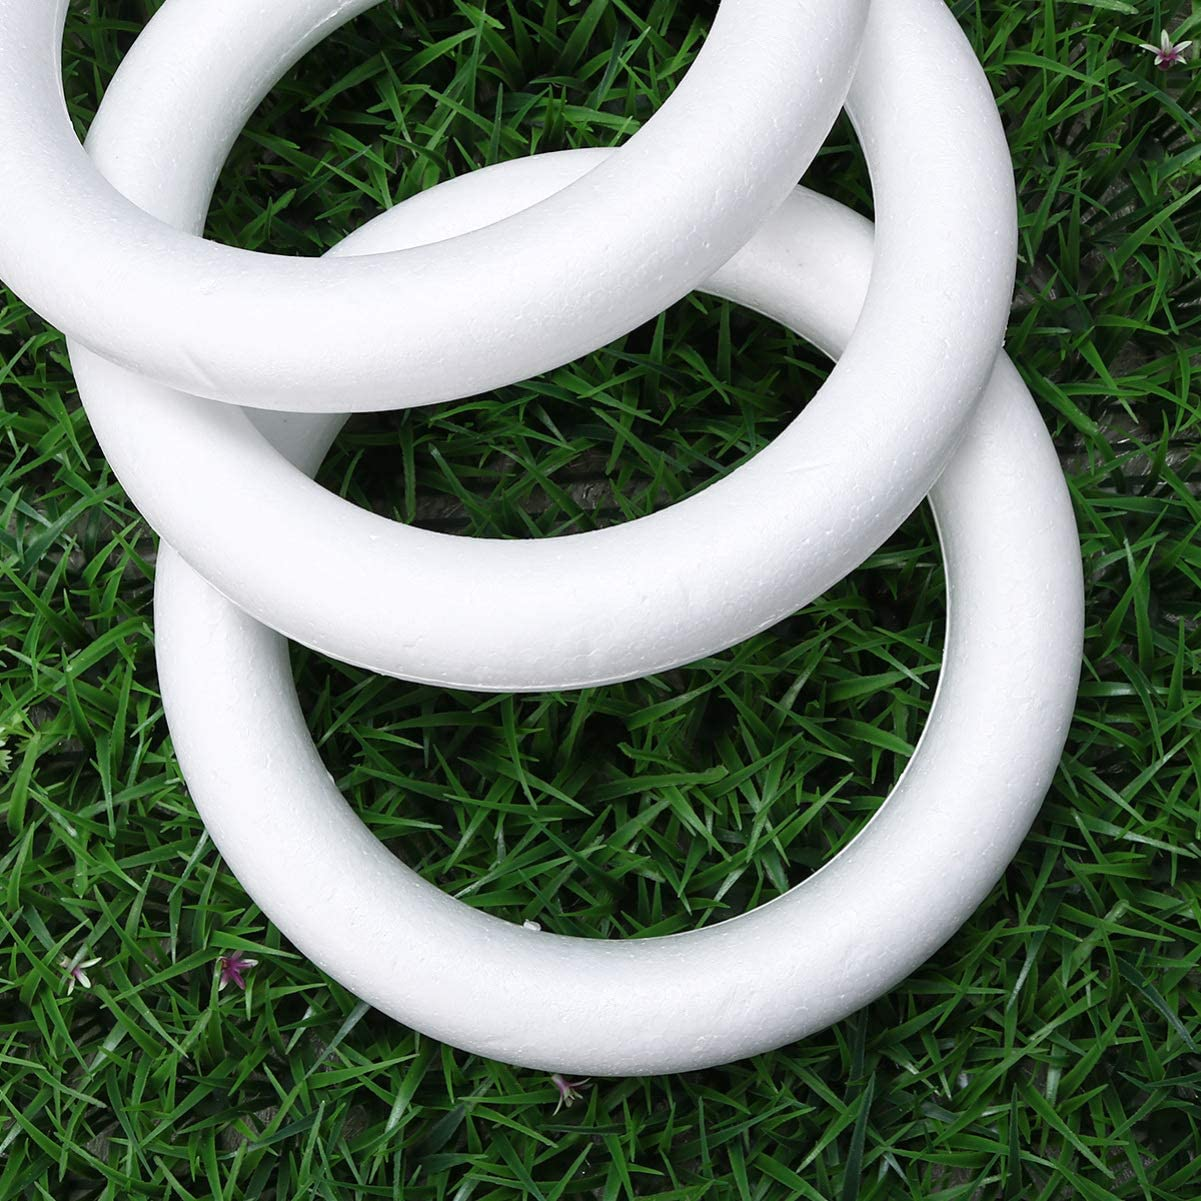 White SUPVOX Craft Foam Wreath Polystyrene Foam Rings for DIY Art Crafts Floral Projects Christmas Wedding Home Decorations 3pcs